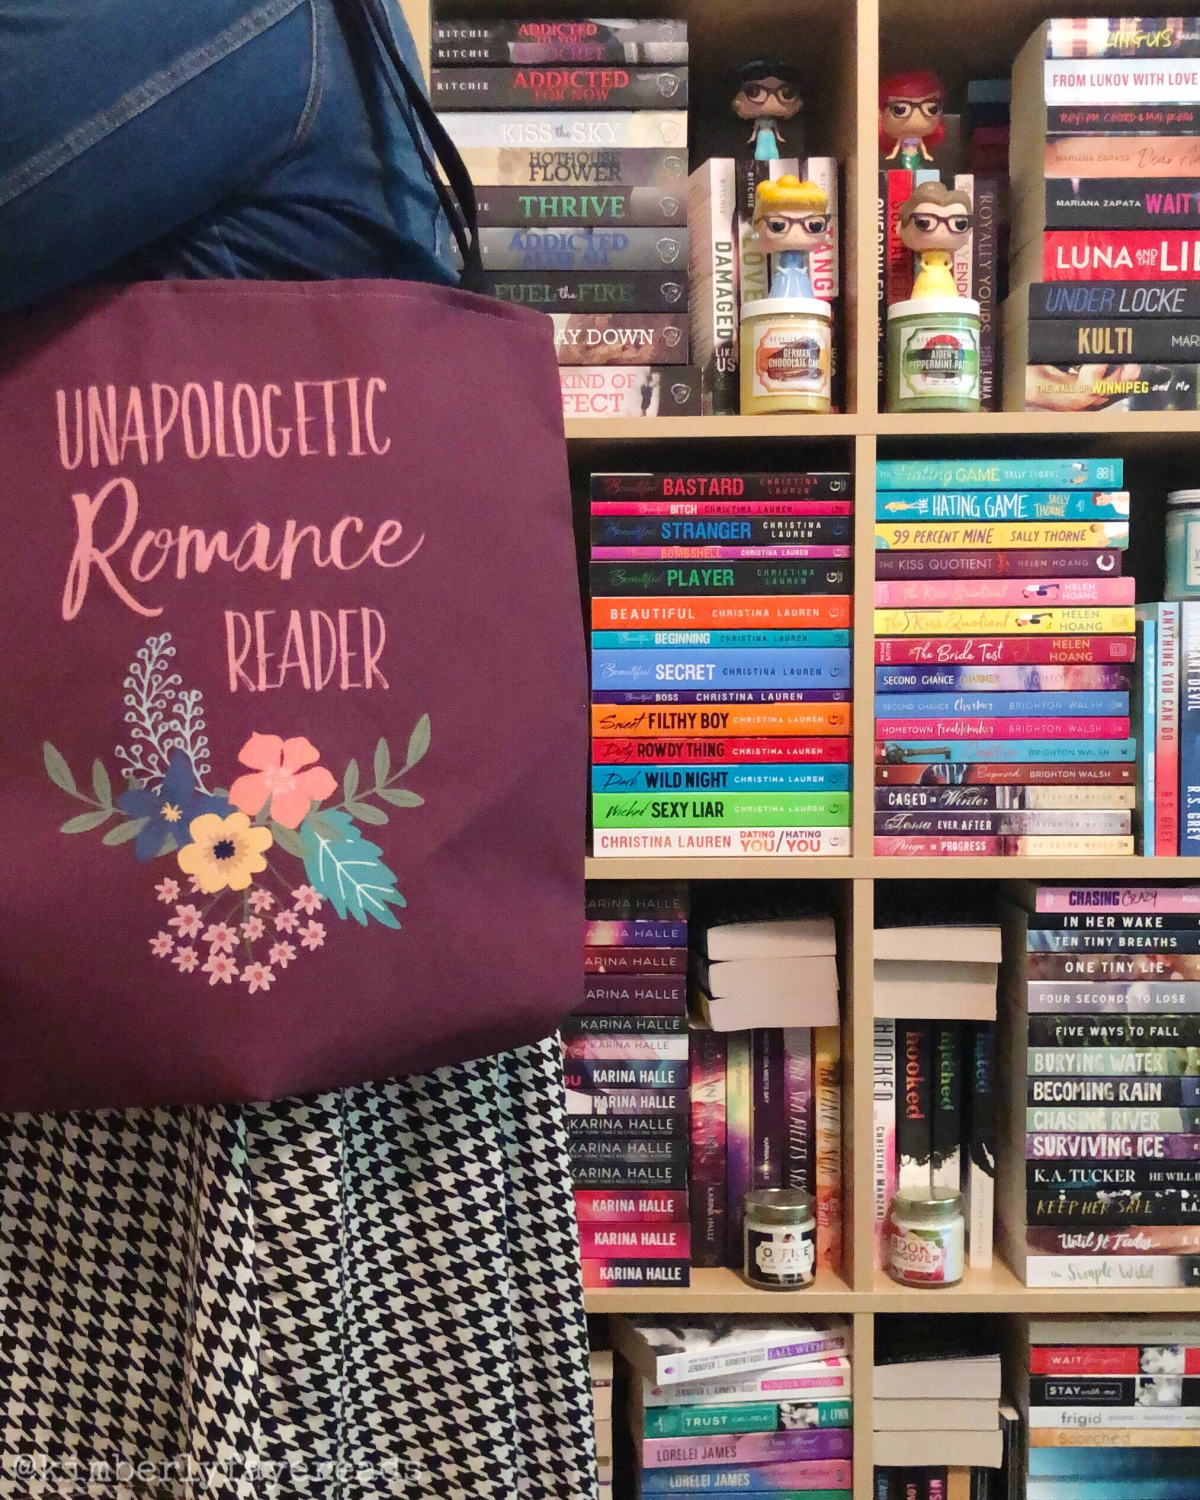 Unapologetic Romance Reader